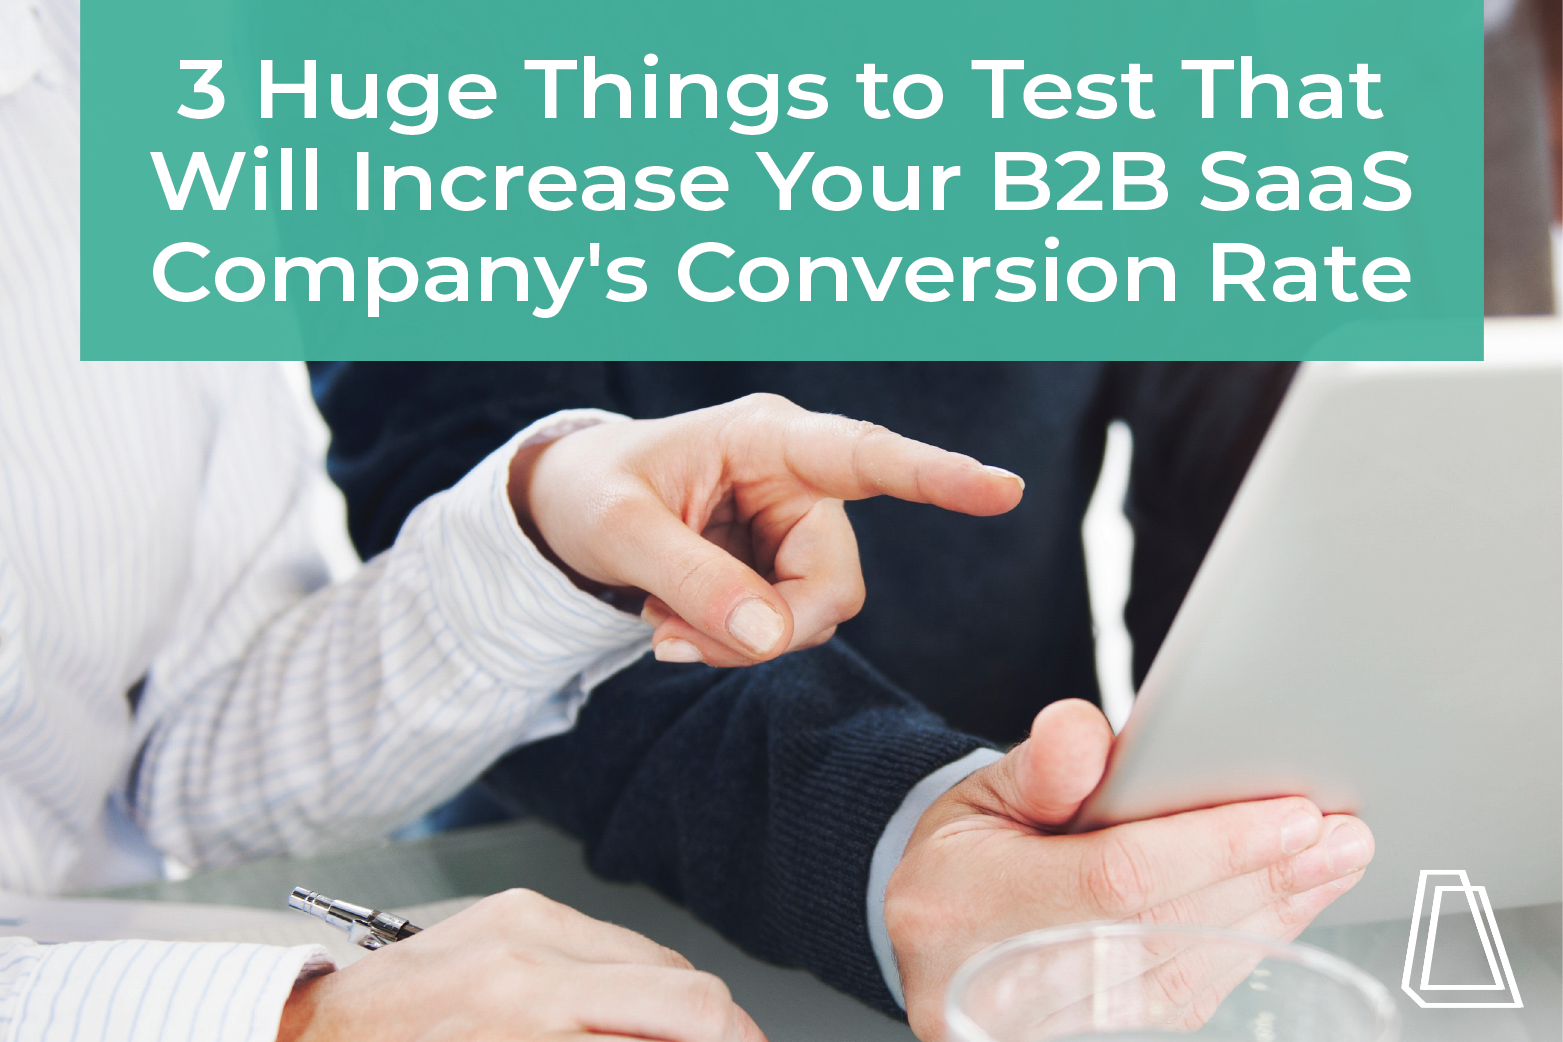 3 Huge Things to Test That Will Increase Your B2B Company's Conversion Rate